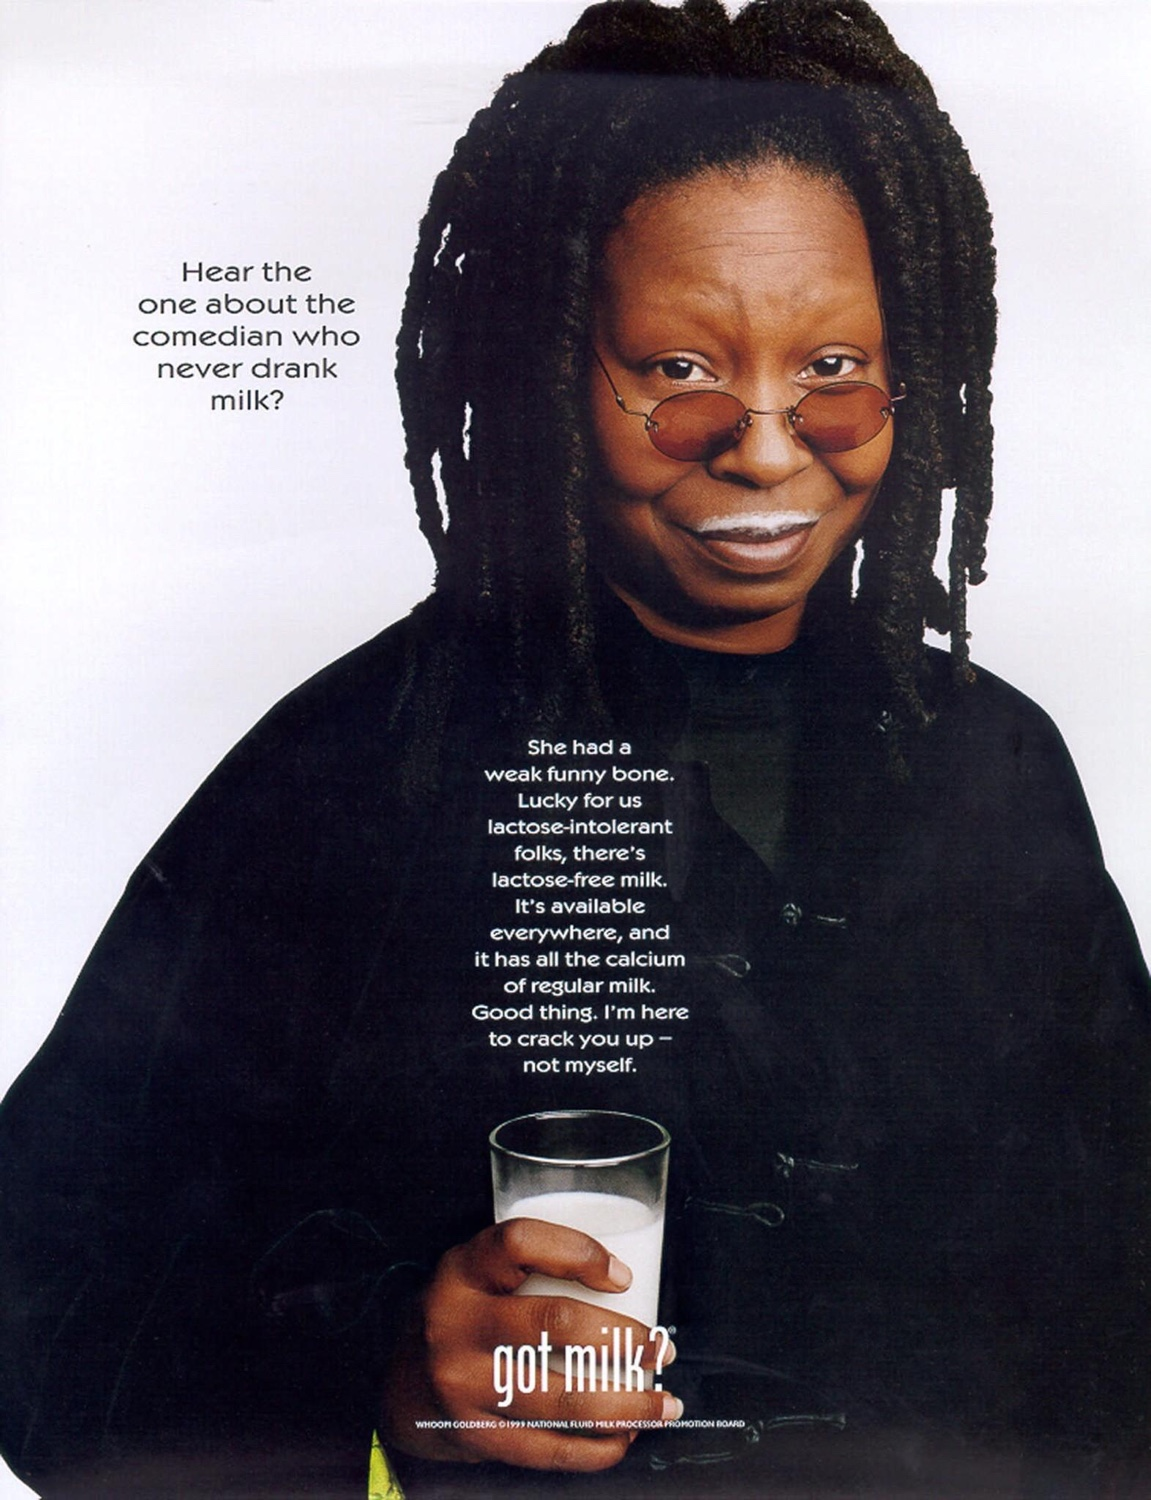 'Got Milk?' is a long-running slogan promoting milk consumption in the USA. Whoopi Goldberg appears in a 1999 advert sporting the well-known milk mustache. (Bozell Public Relations via Associated Press). Image via Los Angeles Times.